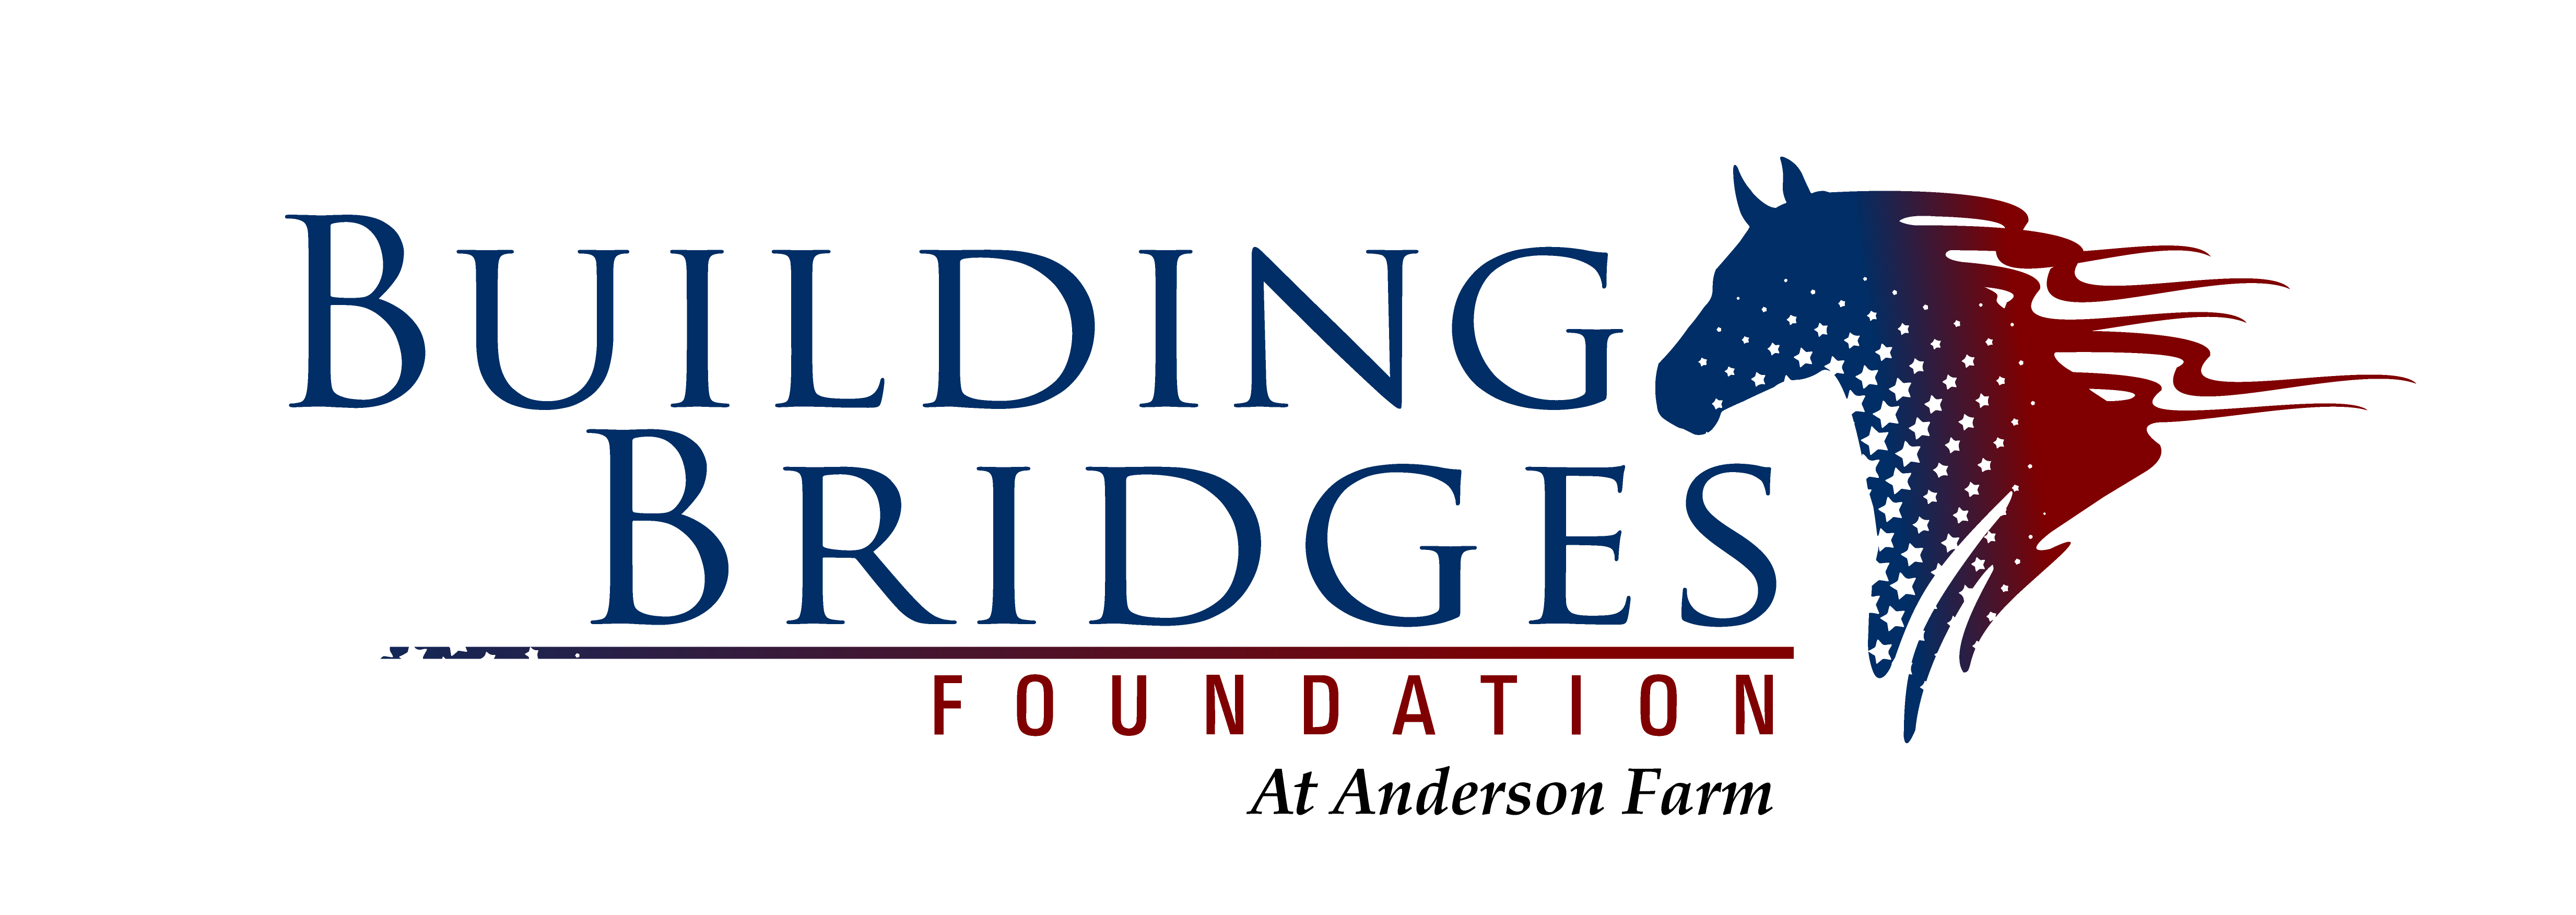 Building Bridges Foundation at Anderson Farm